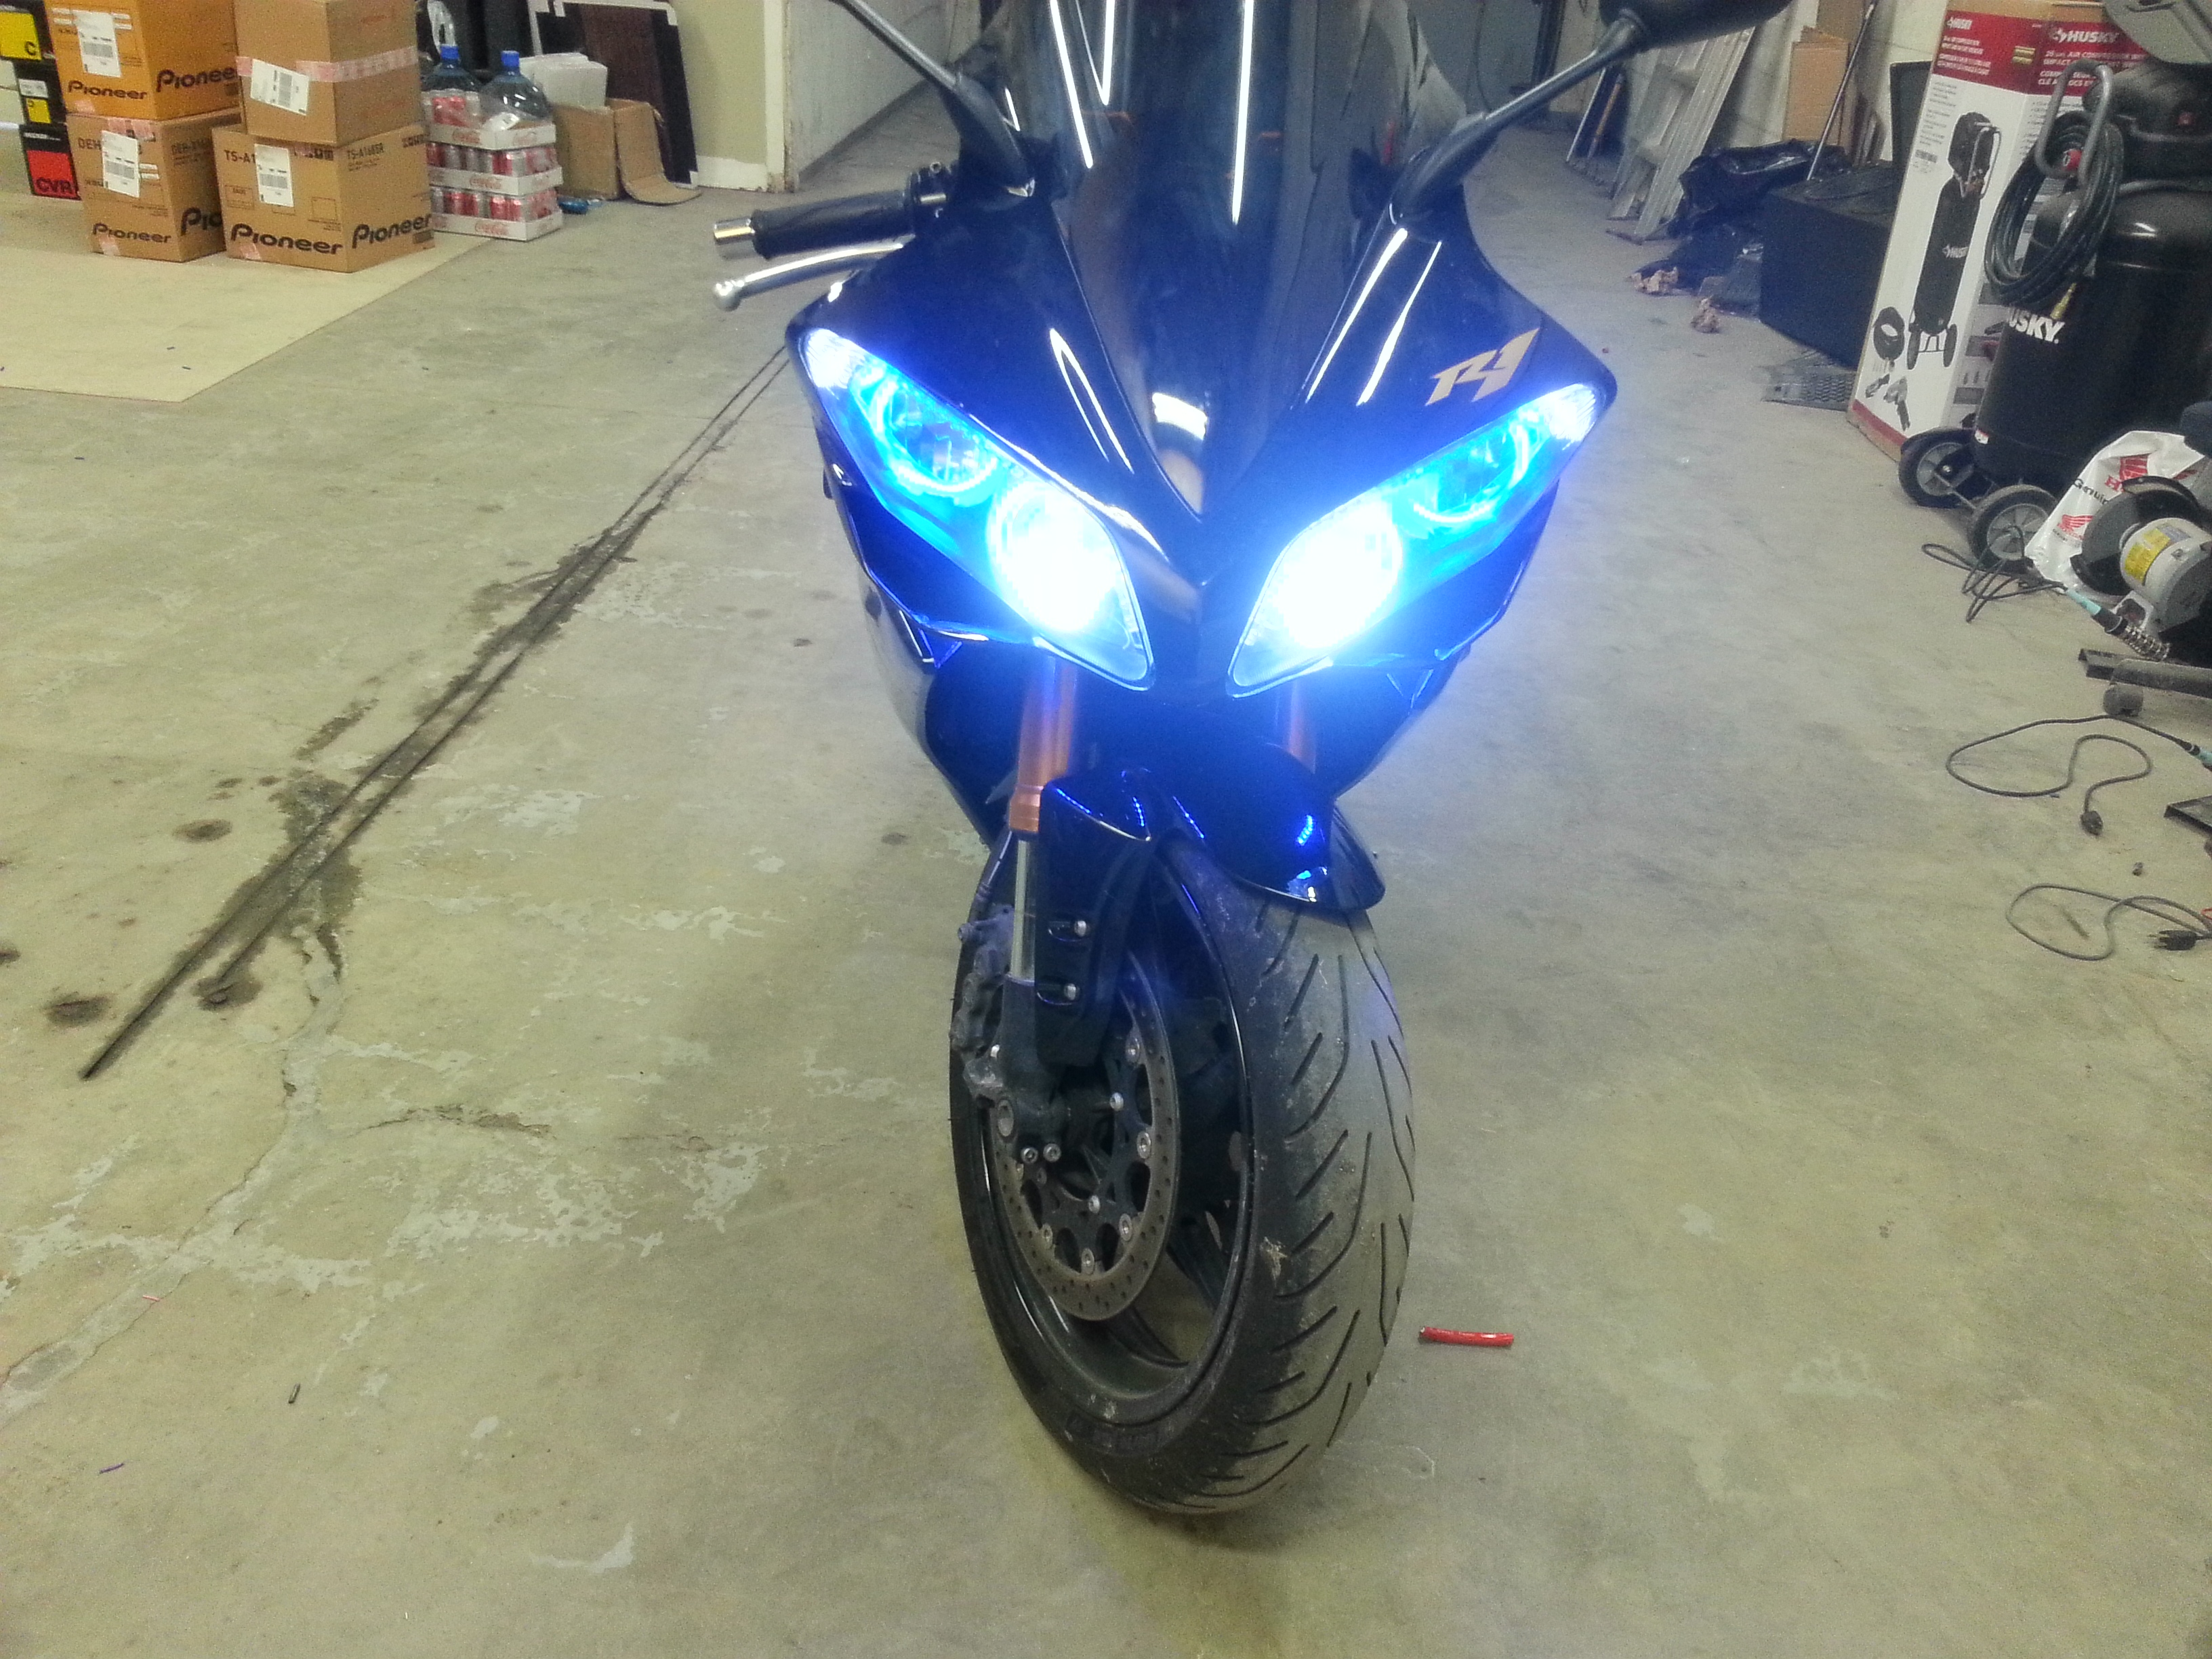 YAMAHA R1 WITH HID KIT FOR LOW BEAM